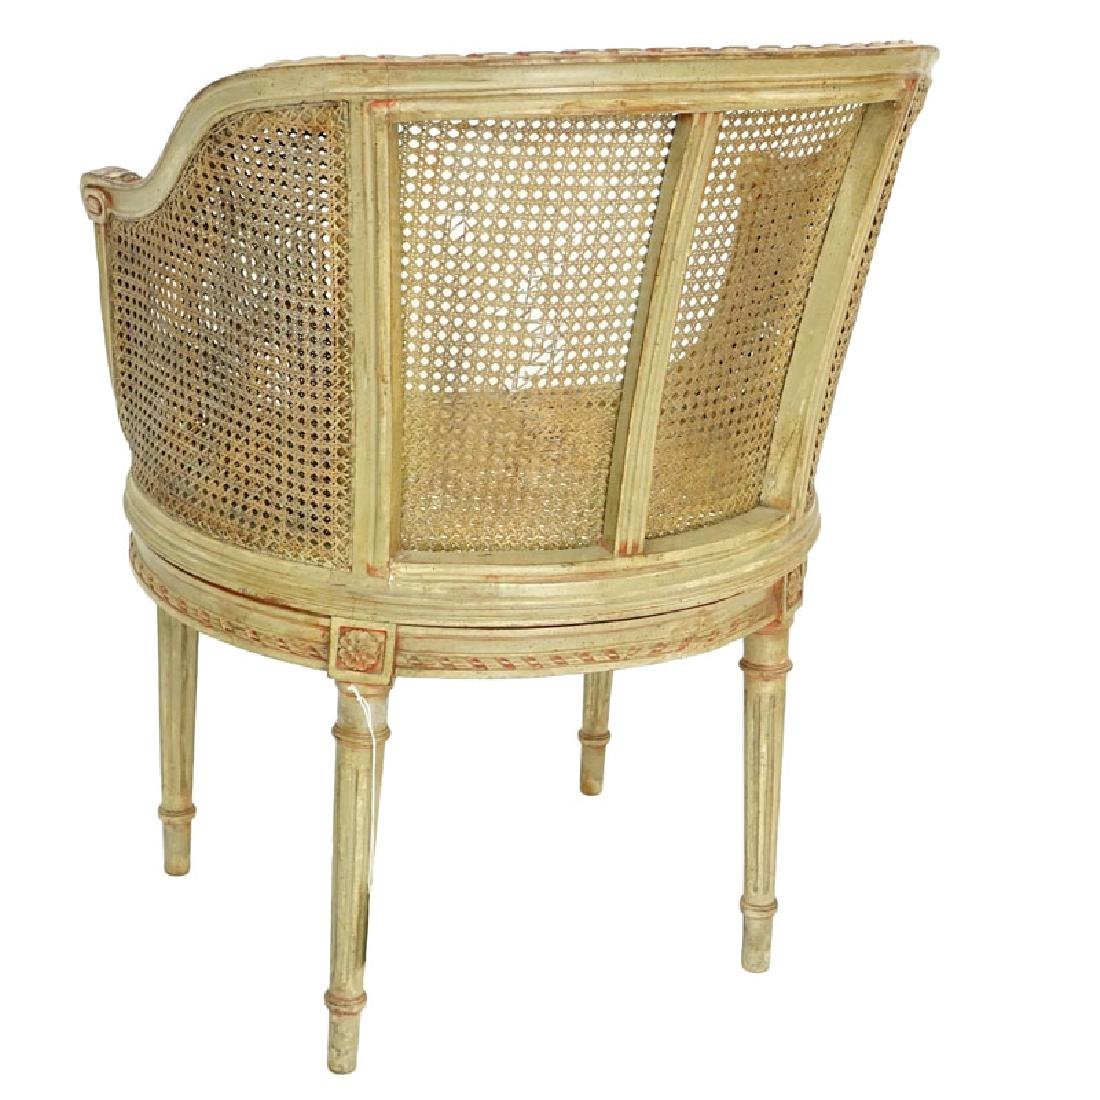 Early 20th Century Louis VXI Style Caned Vanity Chair - 4